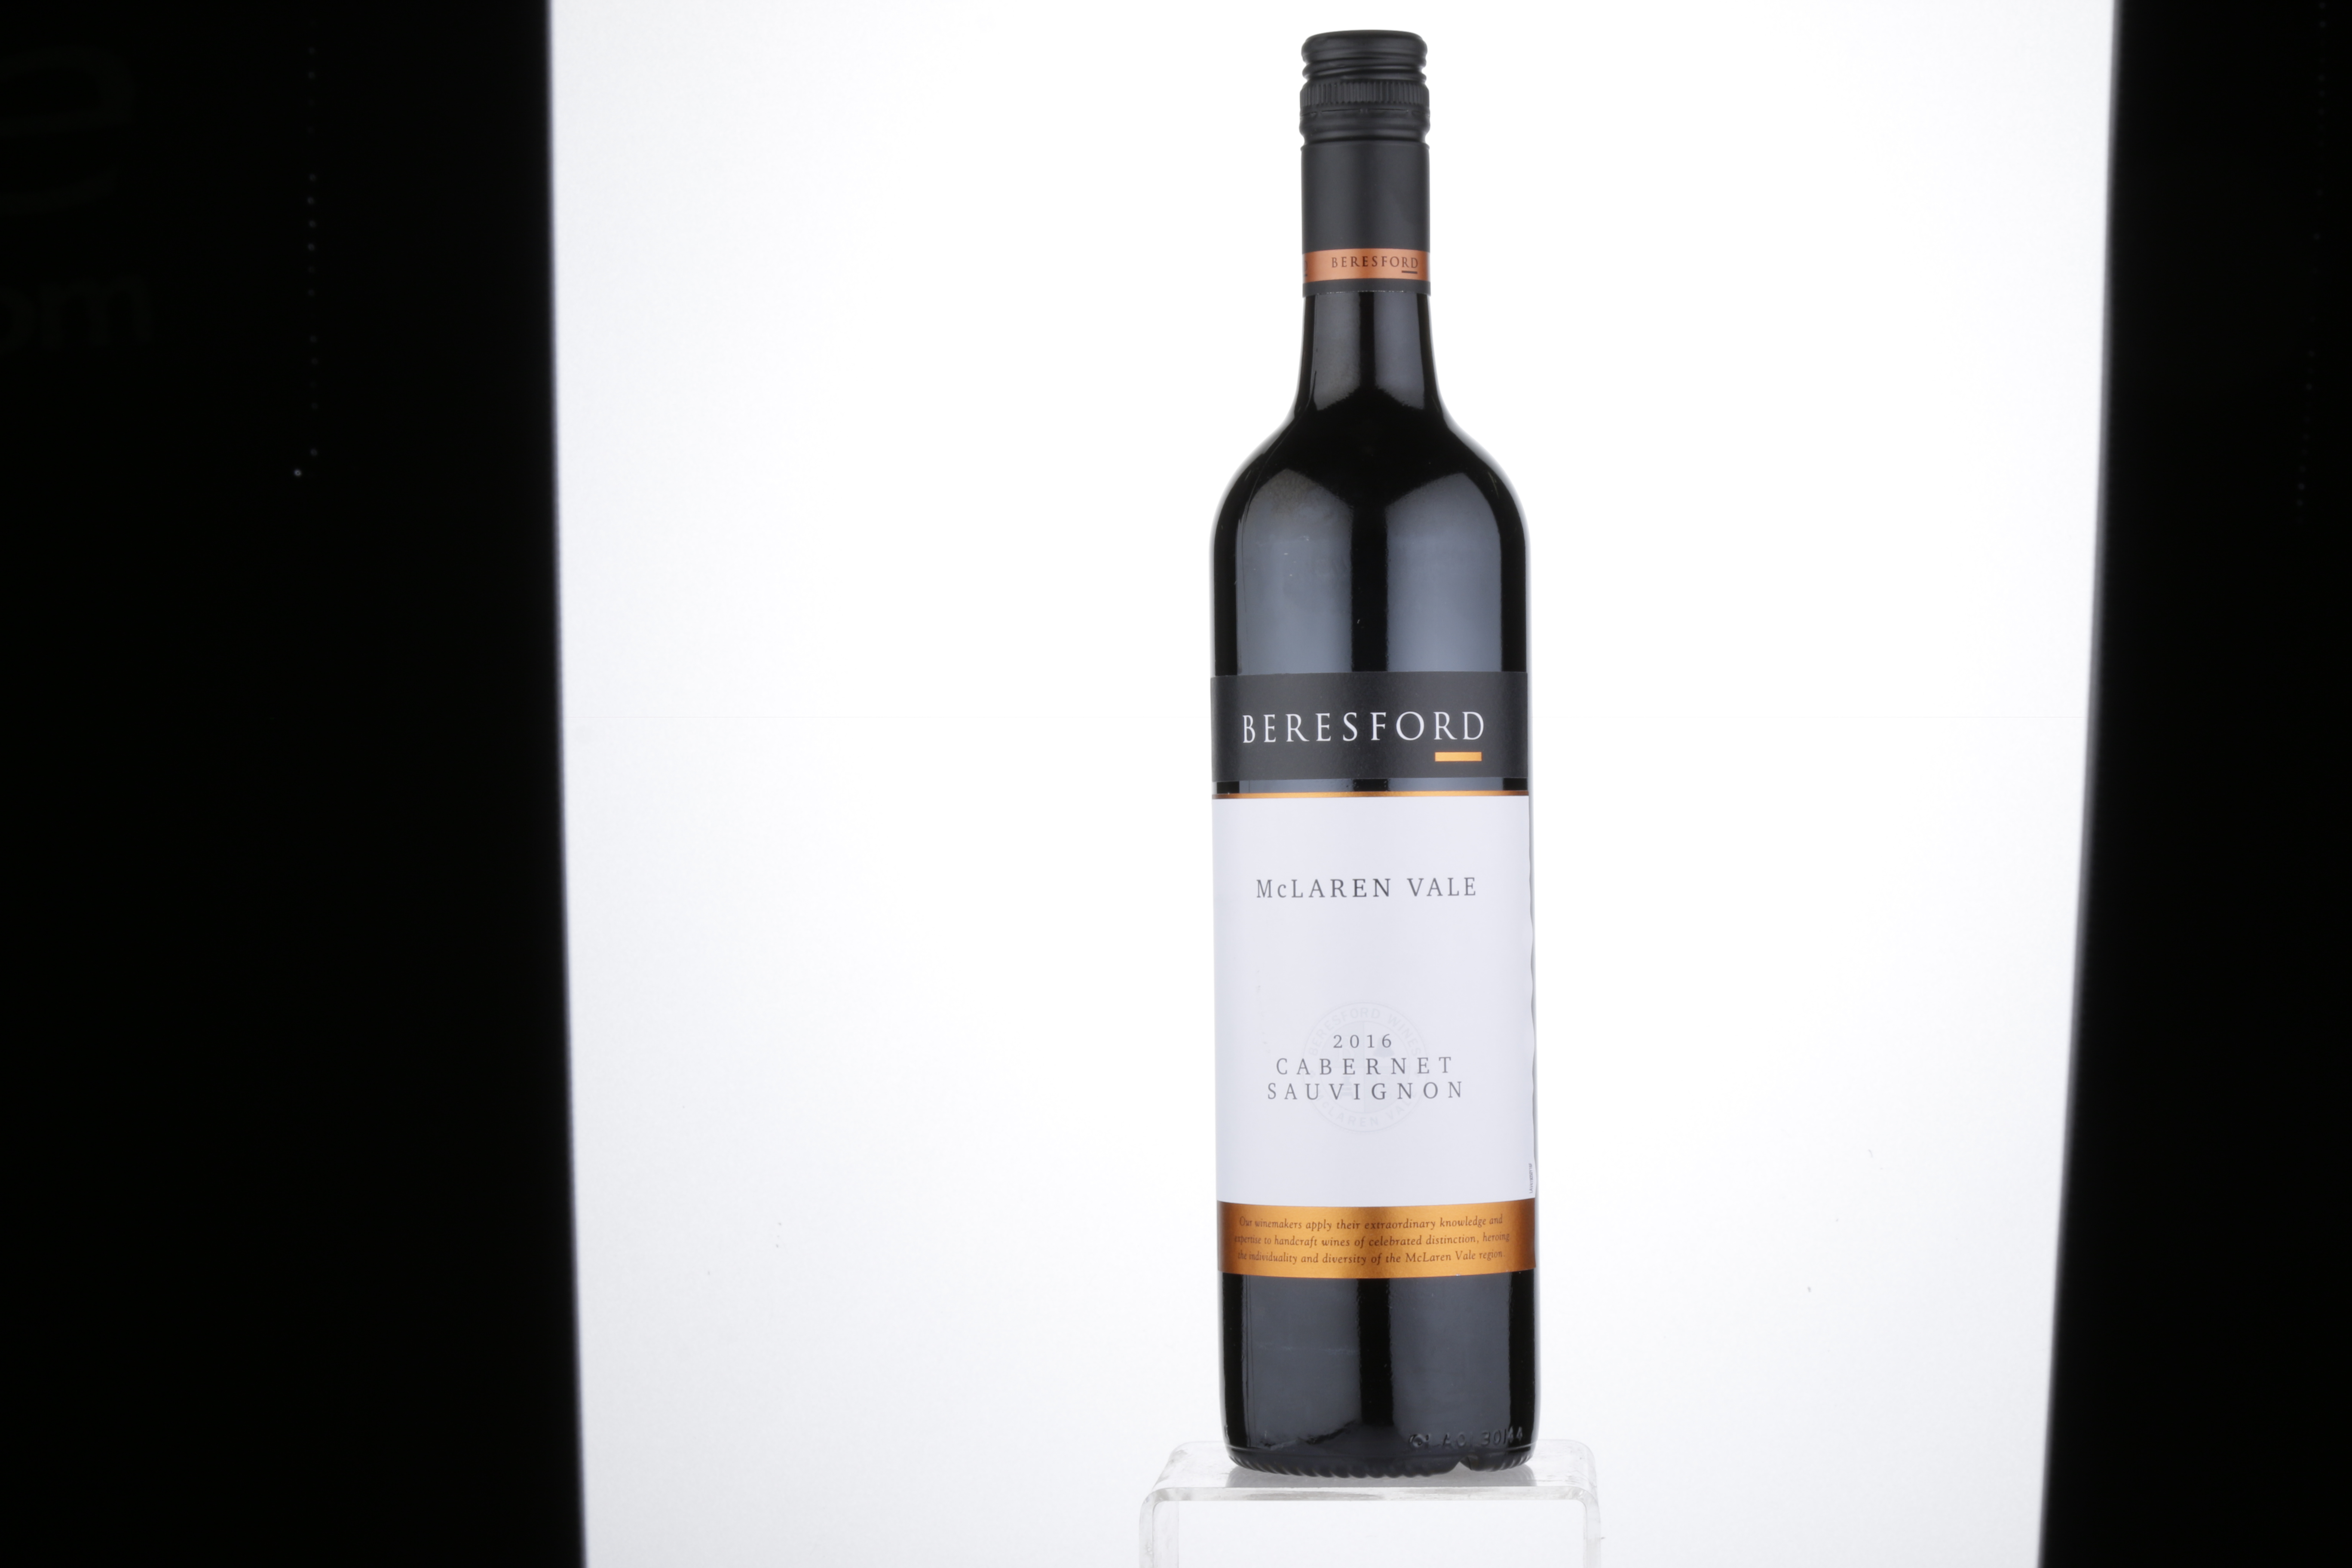 aussie gold rush: 'phenomenal' australian wines secure top medal